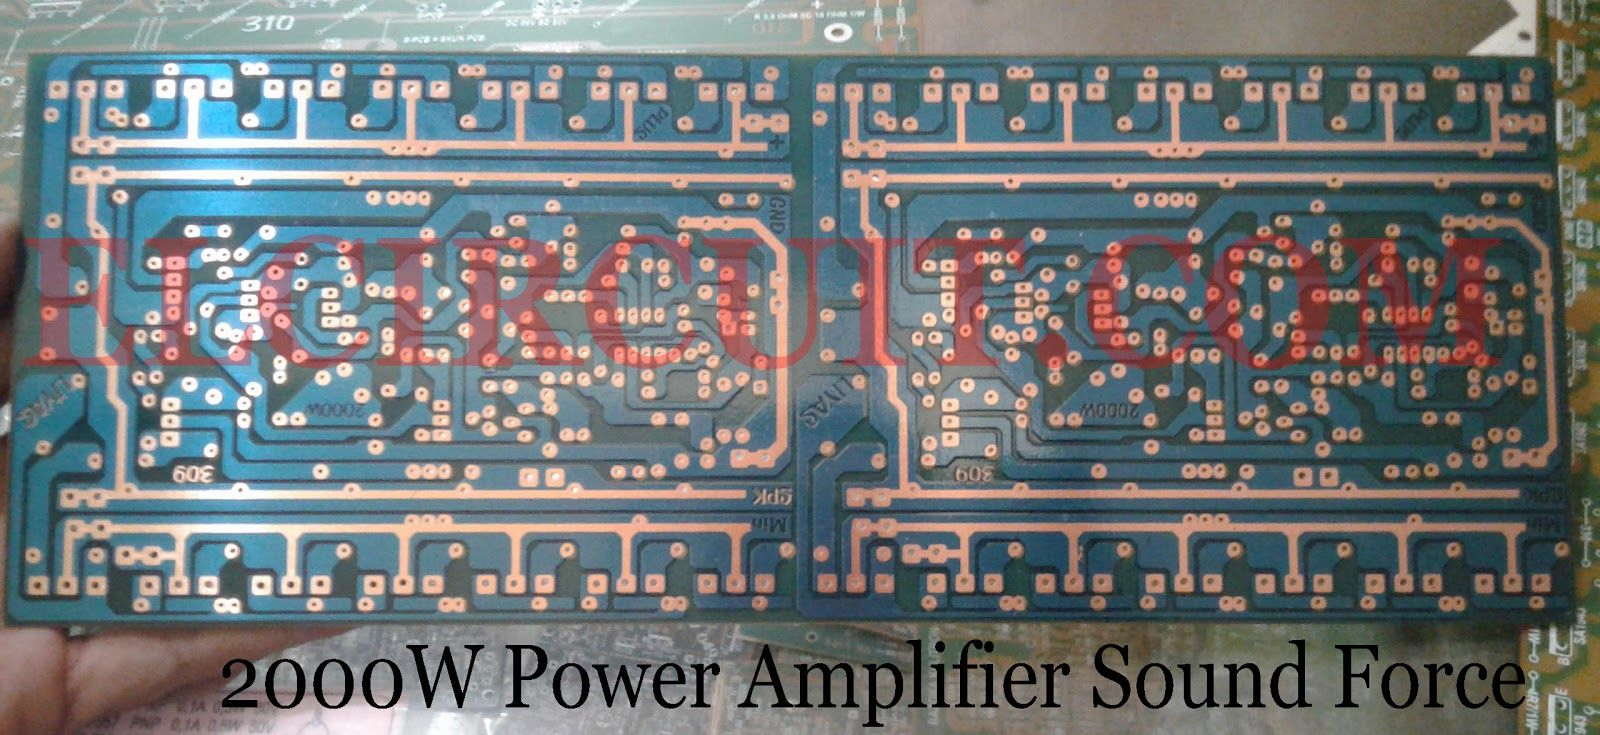 2000w power amplifier circuit complete pcb layout in 2019 2000w audio amplifier circuit diagram pdf 2000w audio amplifier circuit diagrams [ 1600 x 735 Pixel ]